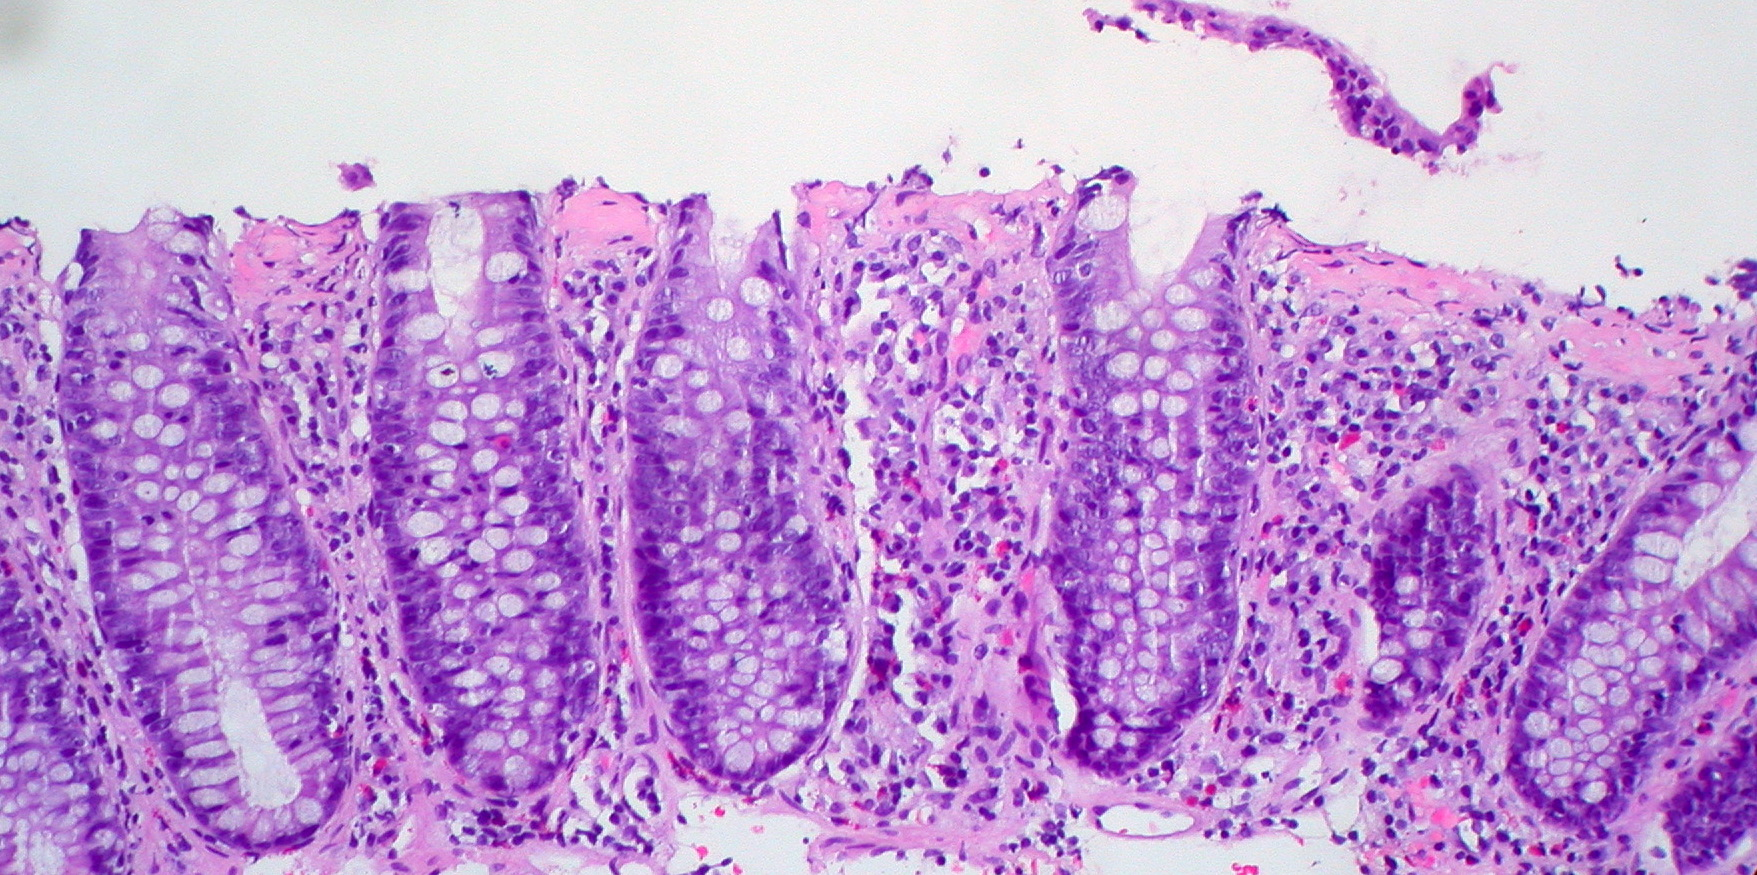 ulcerative colitis steroid treatment side effects